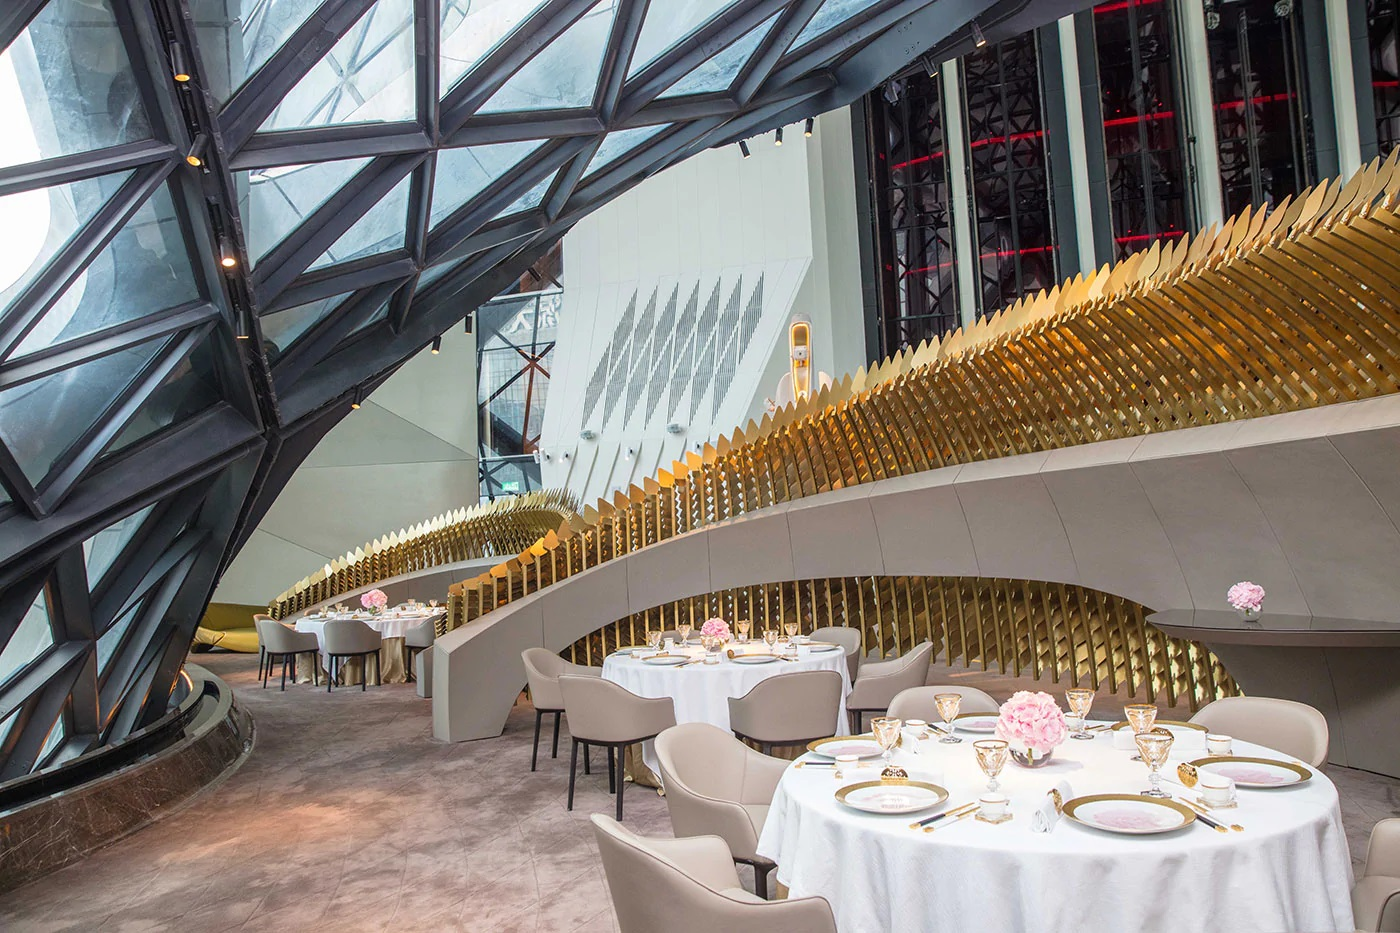 The sky bar, with sophisticated gold barriers between tables